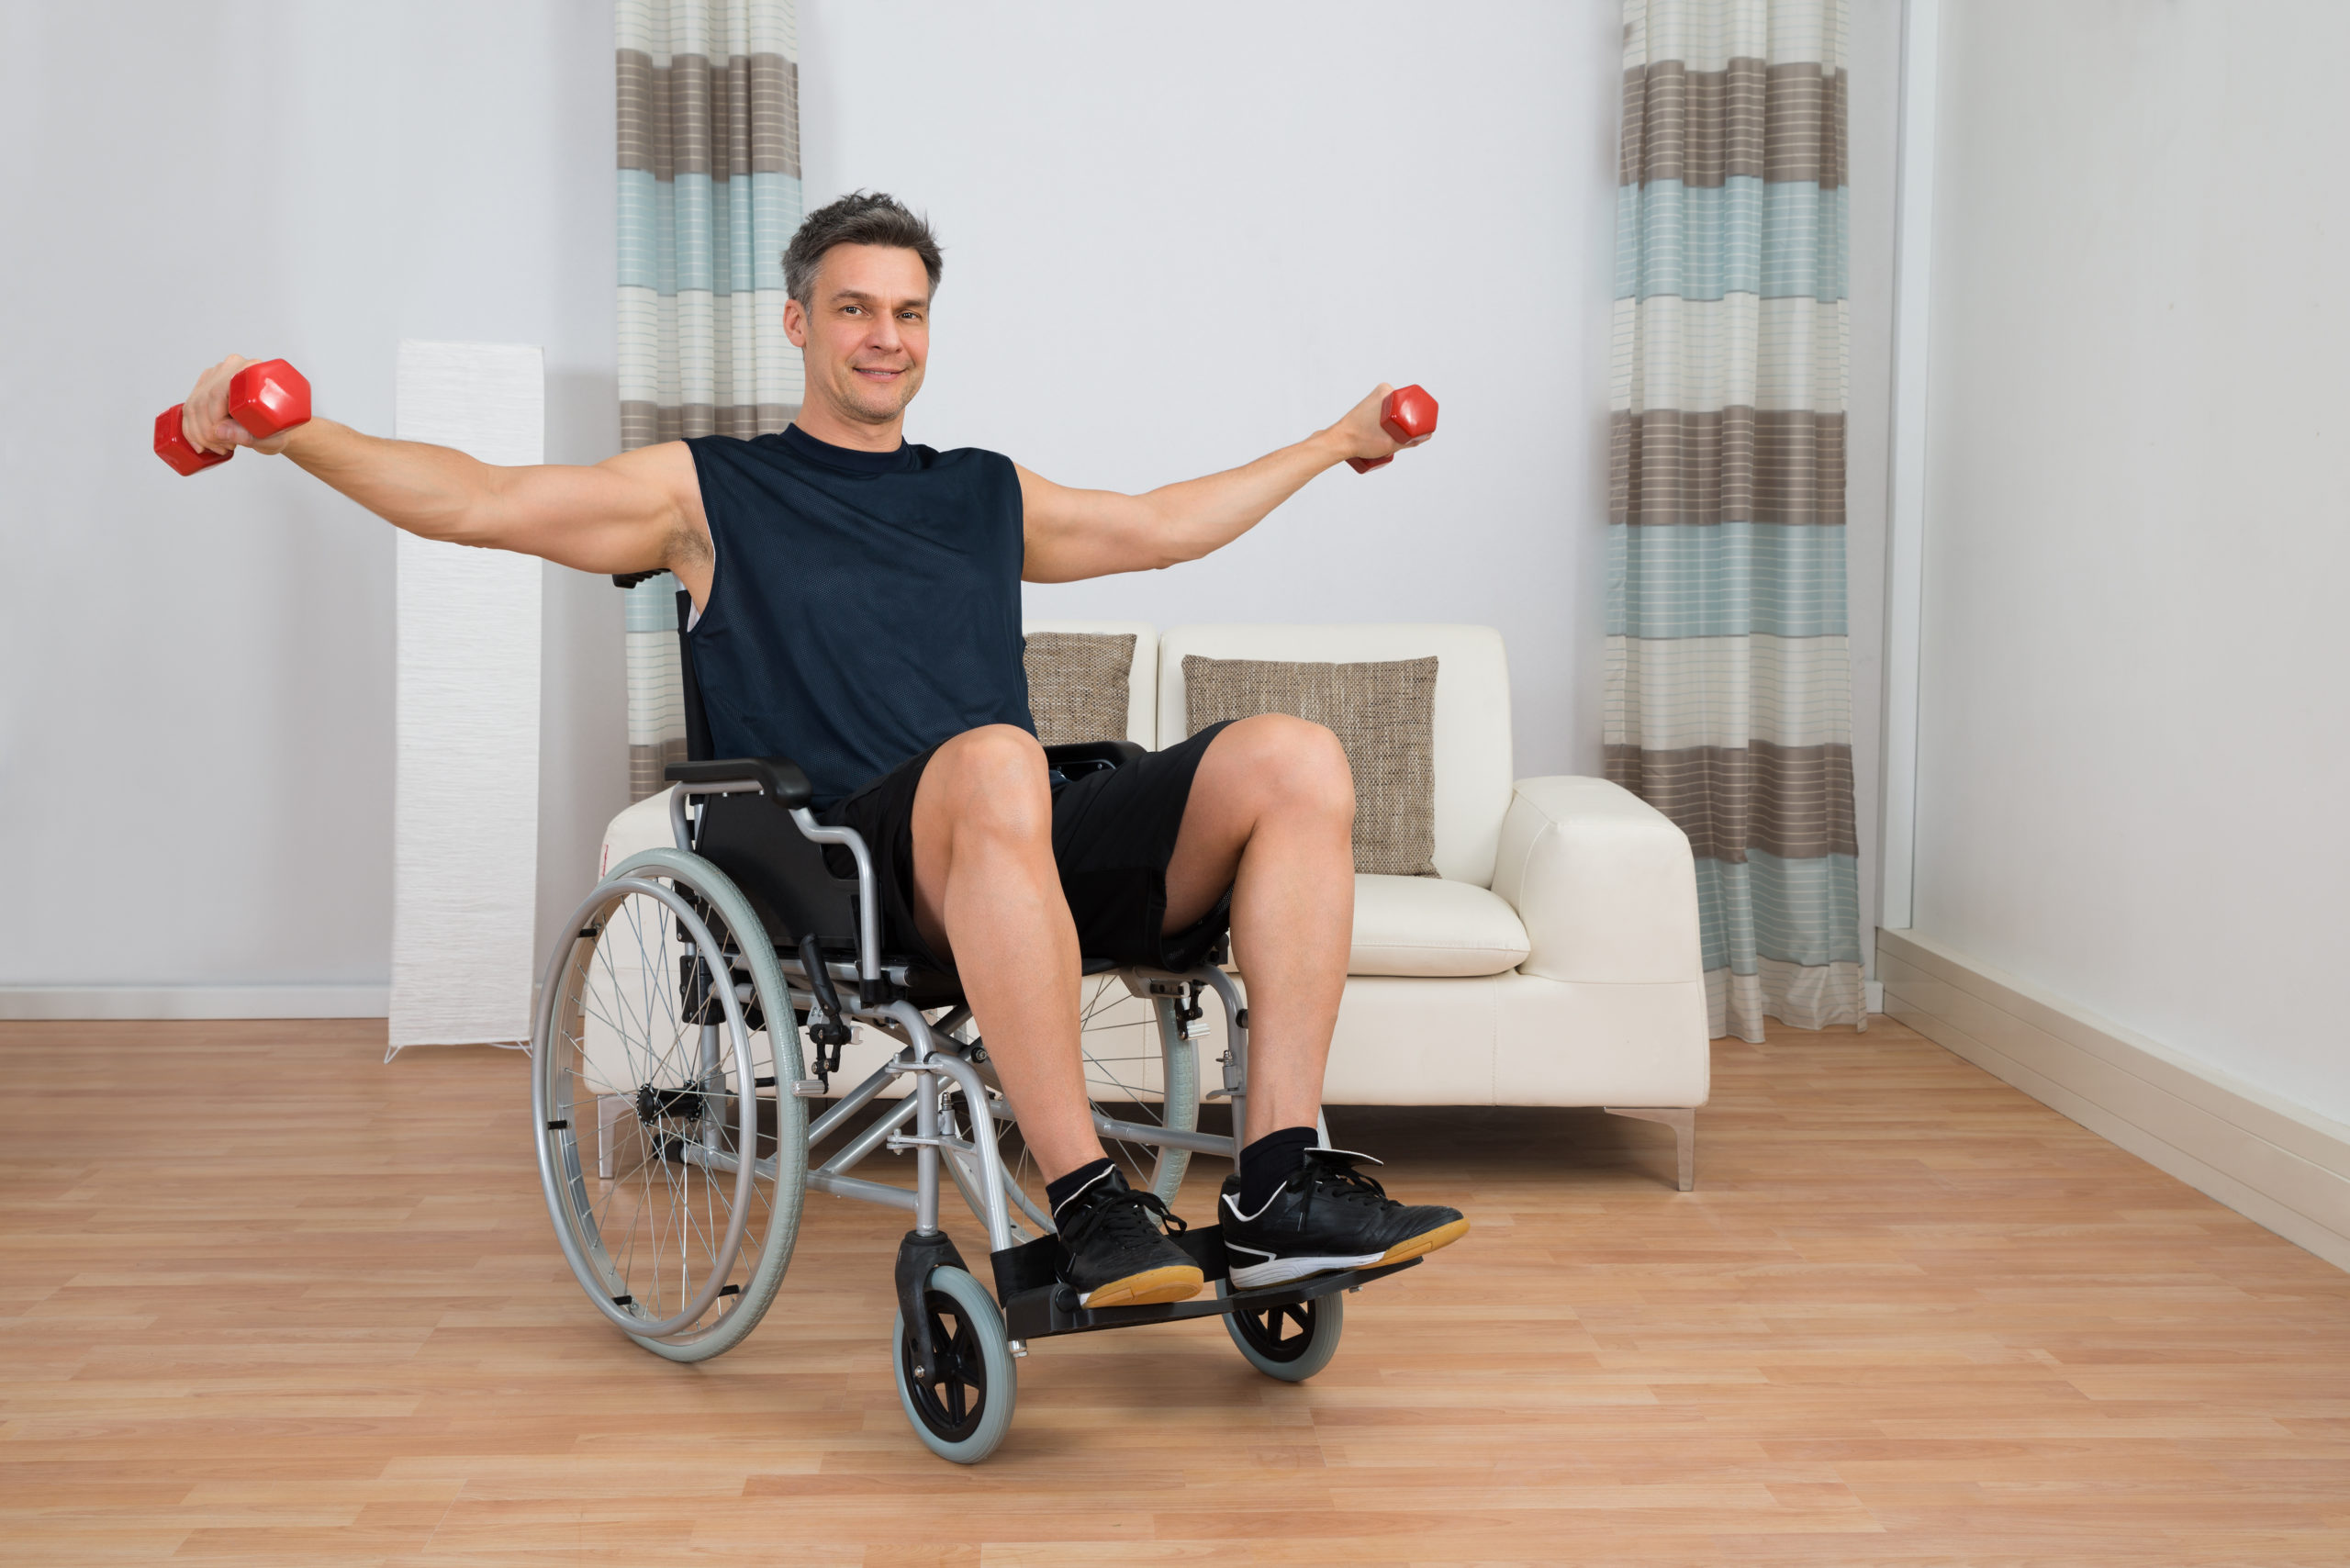 Handicapped Man On Wheelchair Working Out With Dumbbell At Home